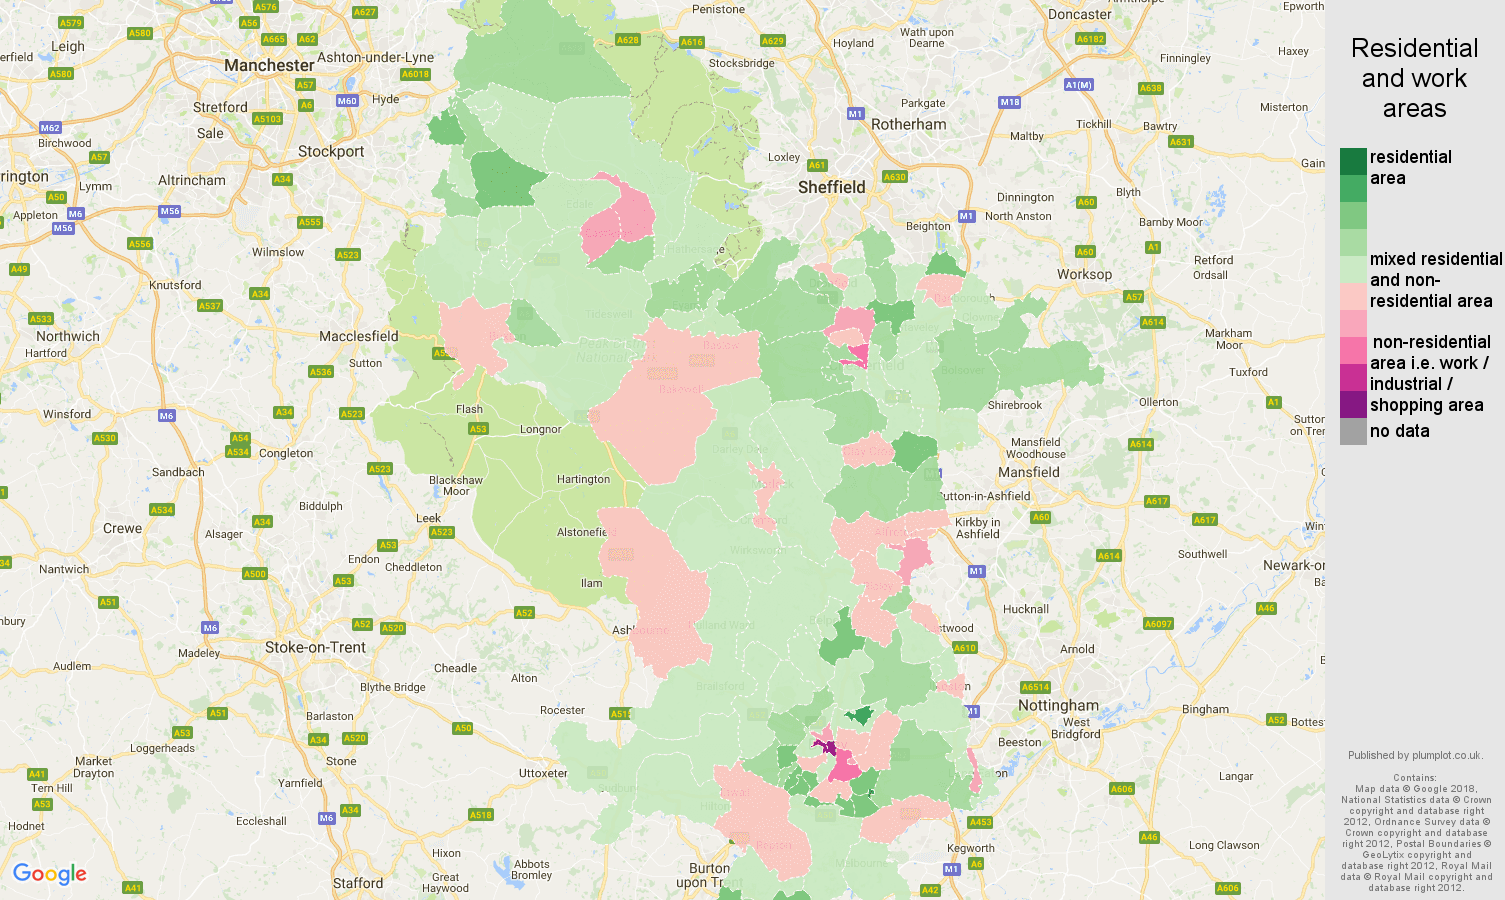 Derbyshire residential areas map